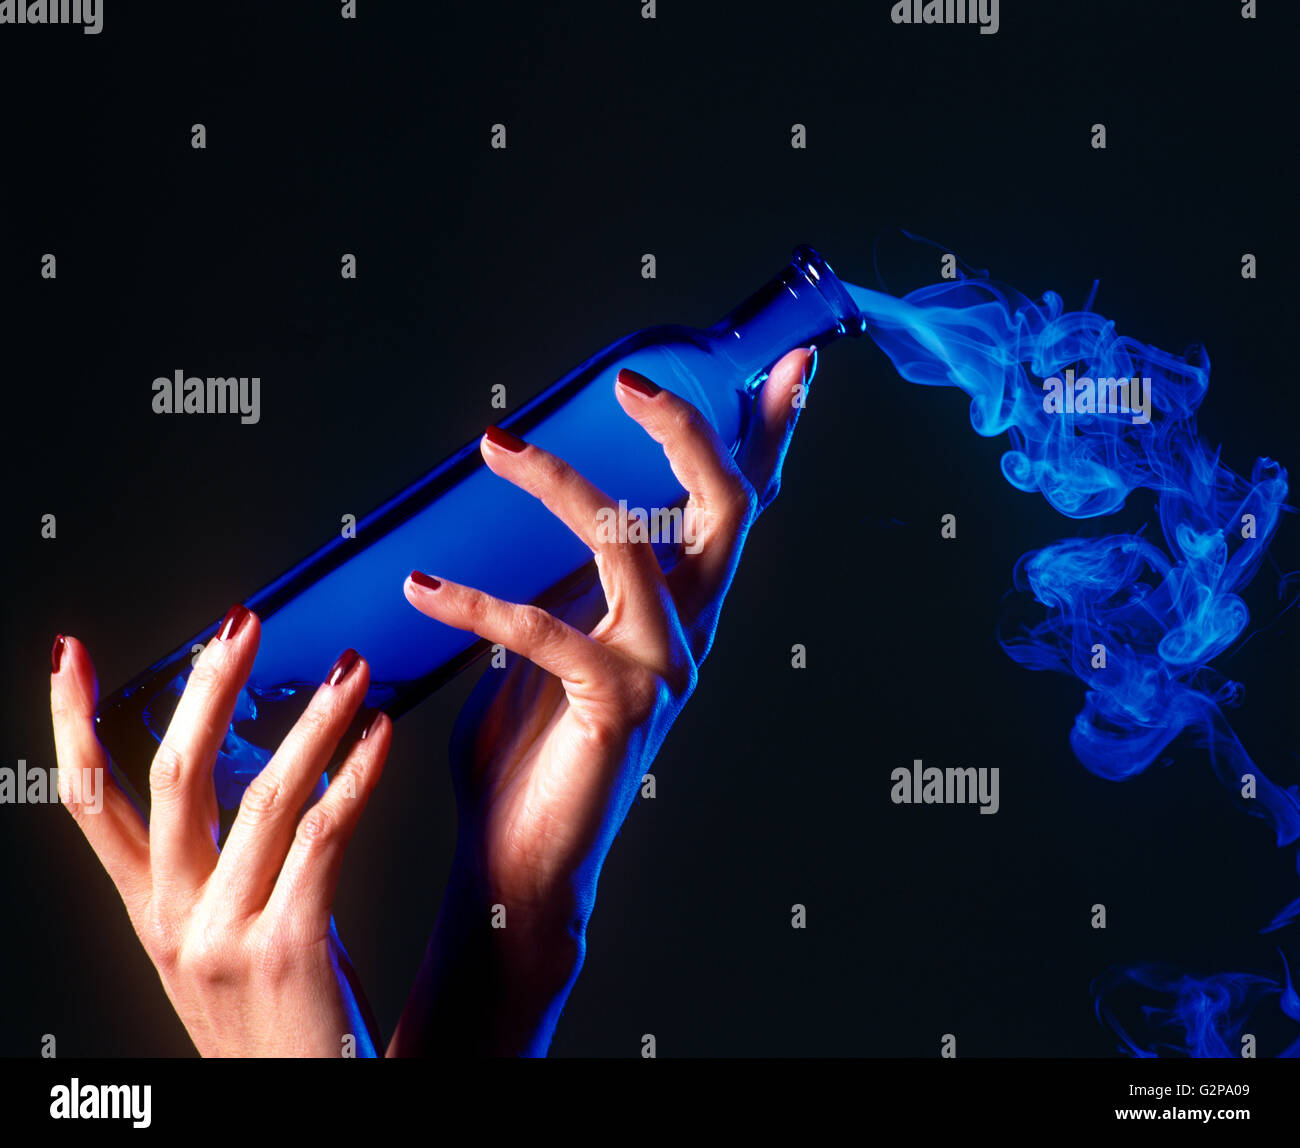 A girls hands holding a bottle of blue smoke, indoors. - Stock Image